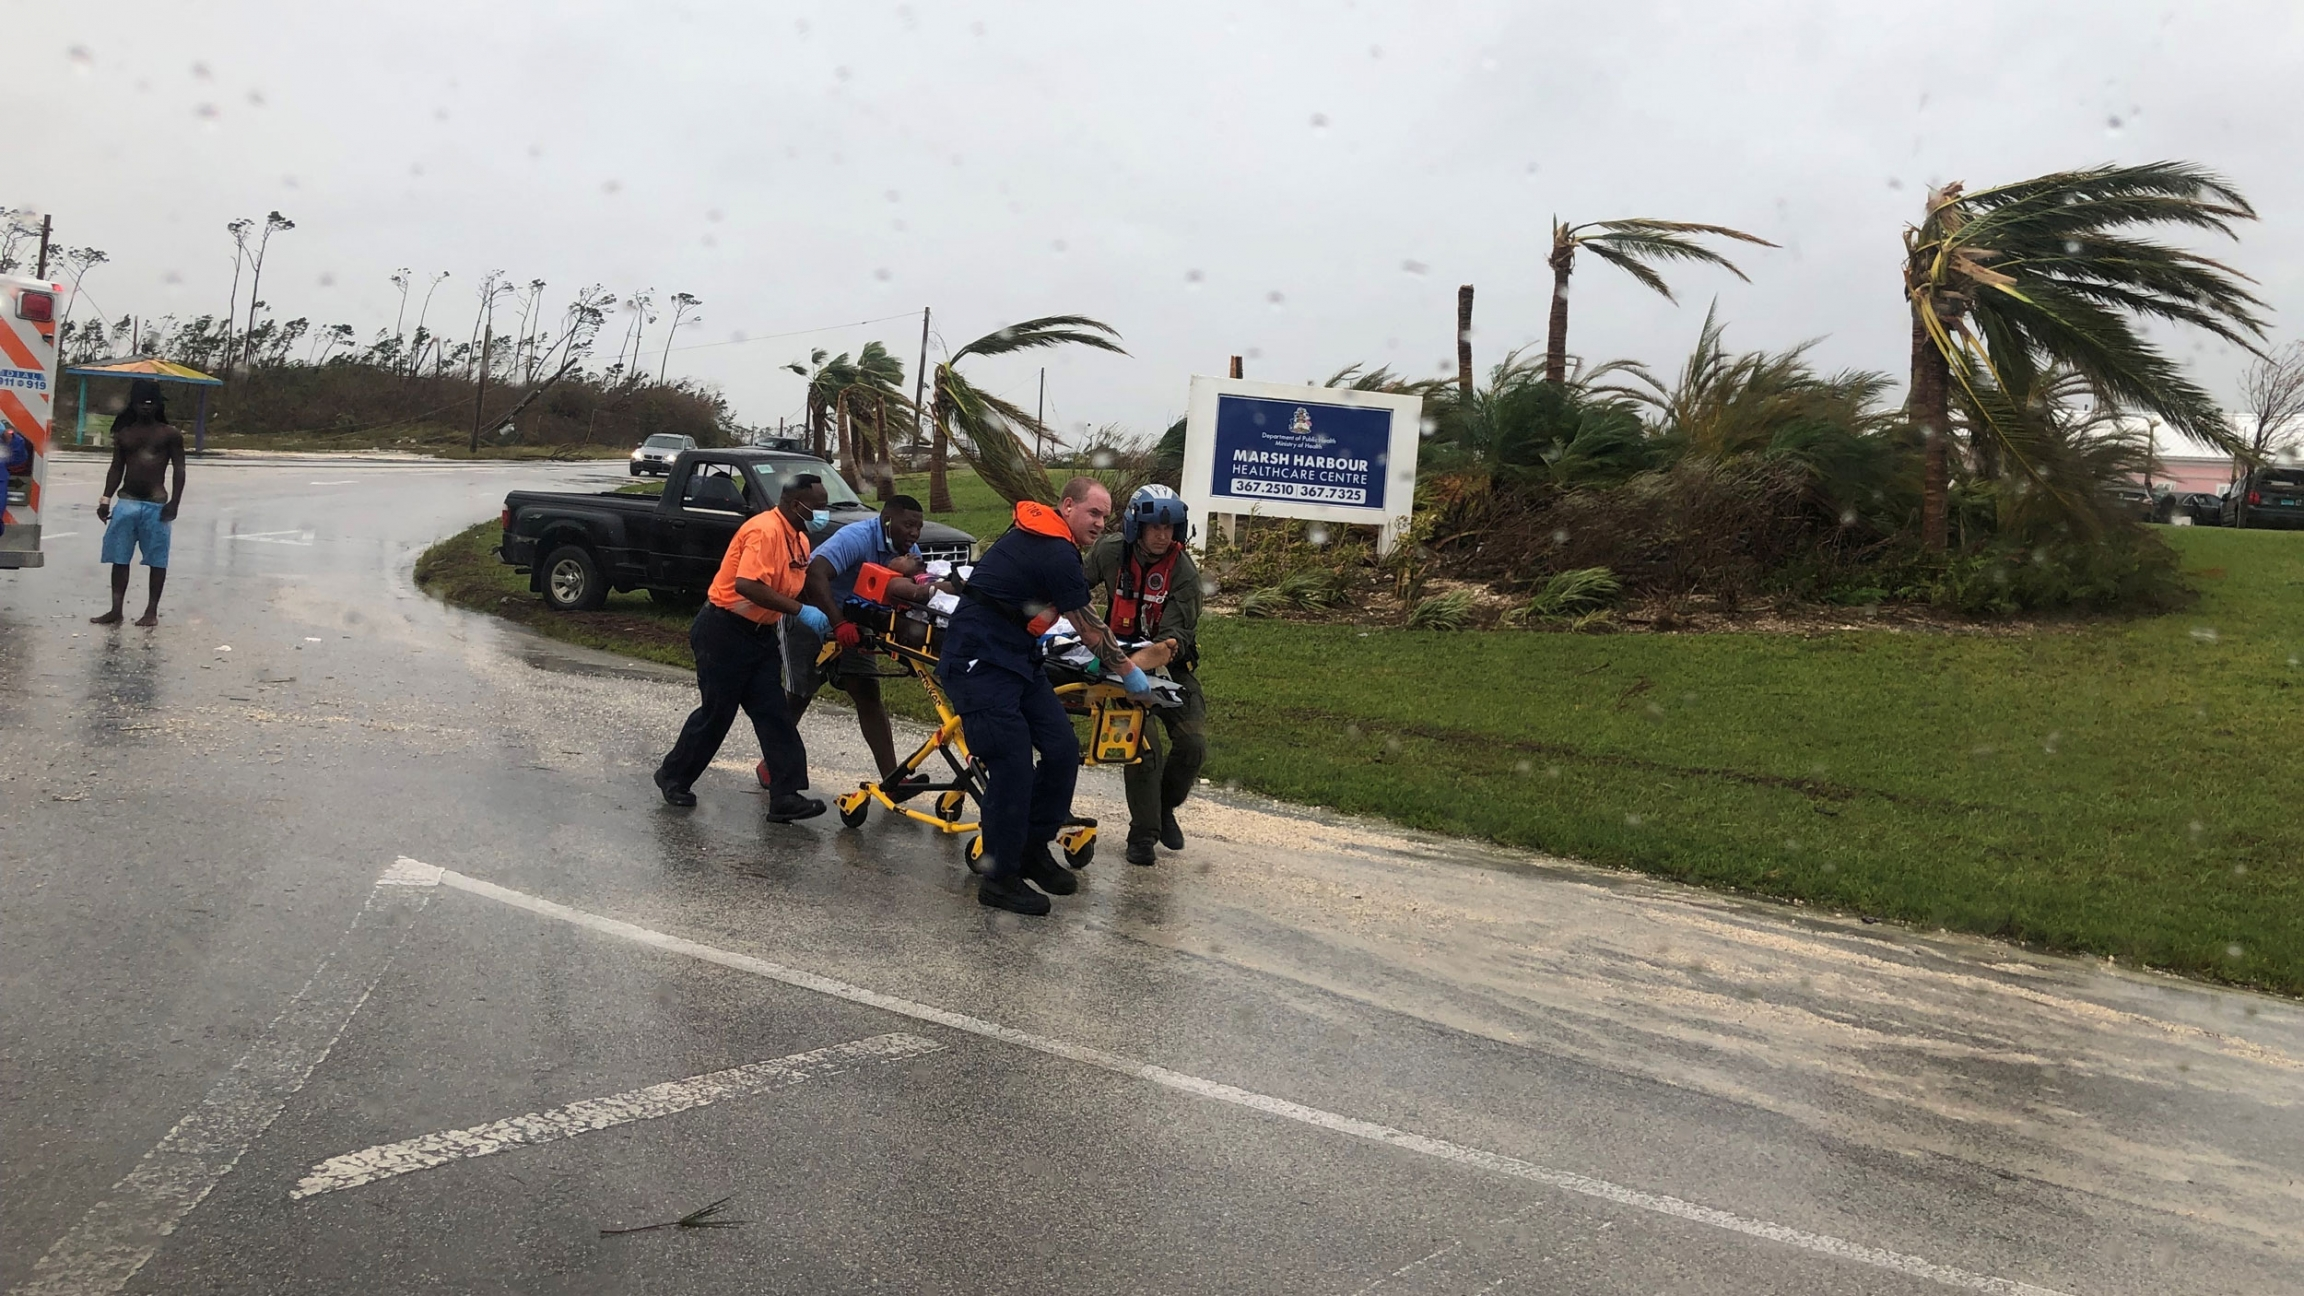 Four people run through a deserted street while pushing a guerney that's holding a patient during Hurricane Dorian.